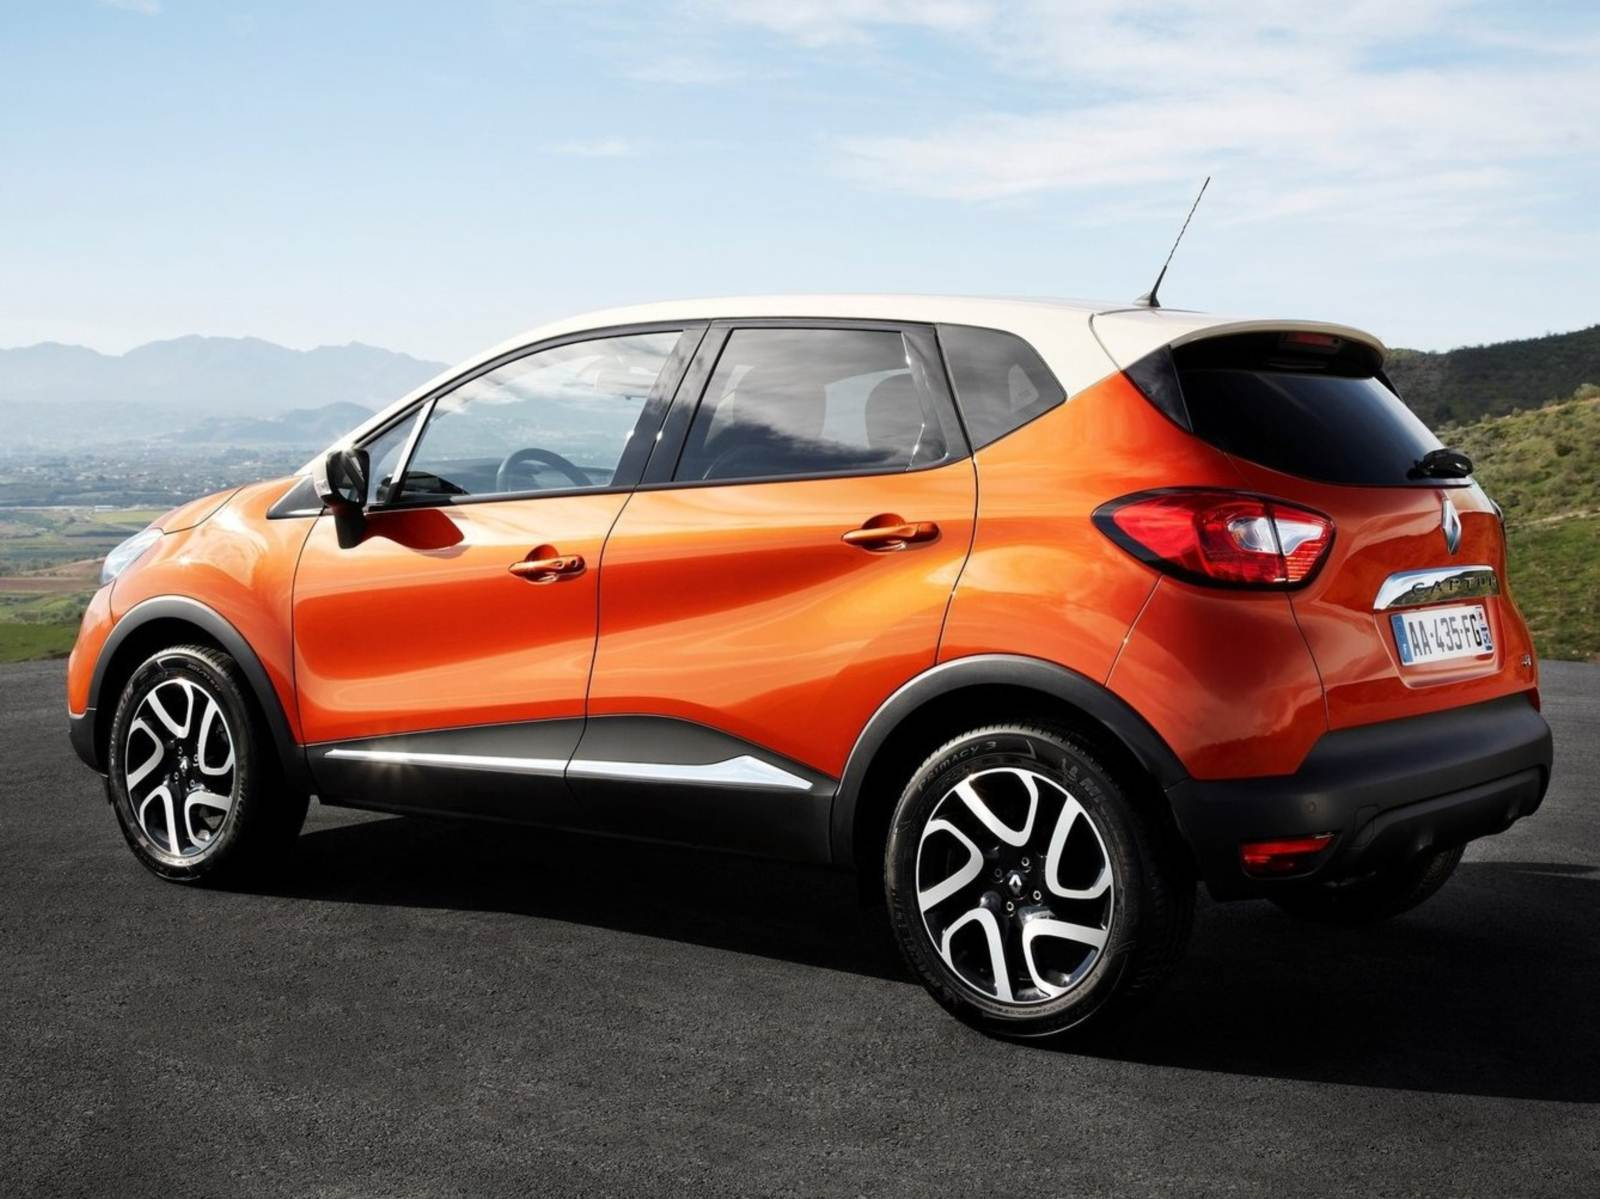 renault captur brasileira chega em 2014 e pre o de r 65mil car blog br. Black Bedroom Furniture Sets. Home Design Ideas